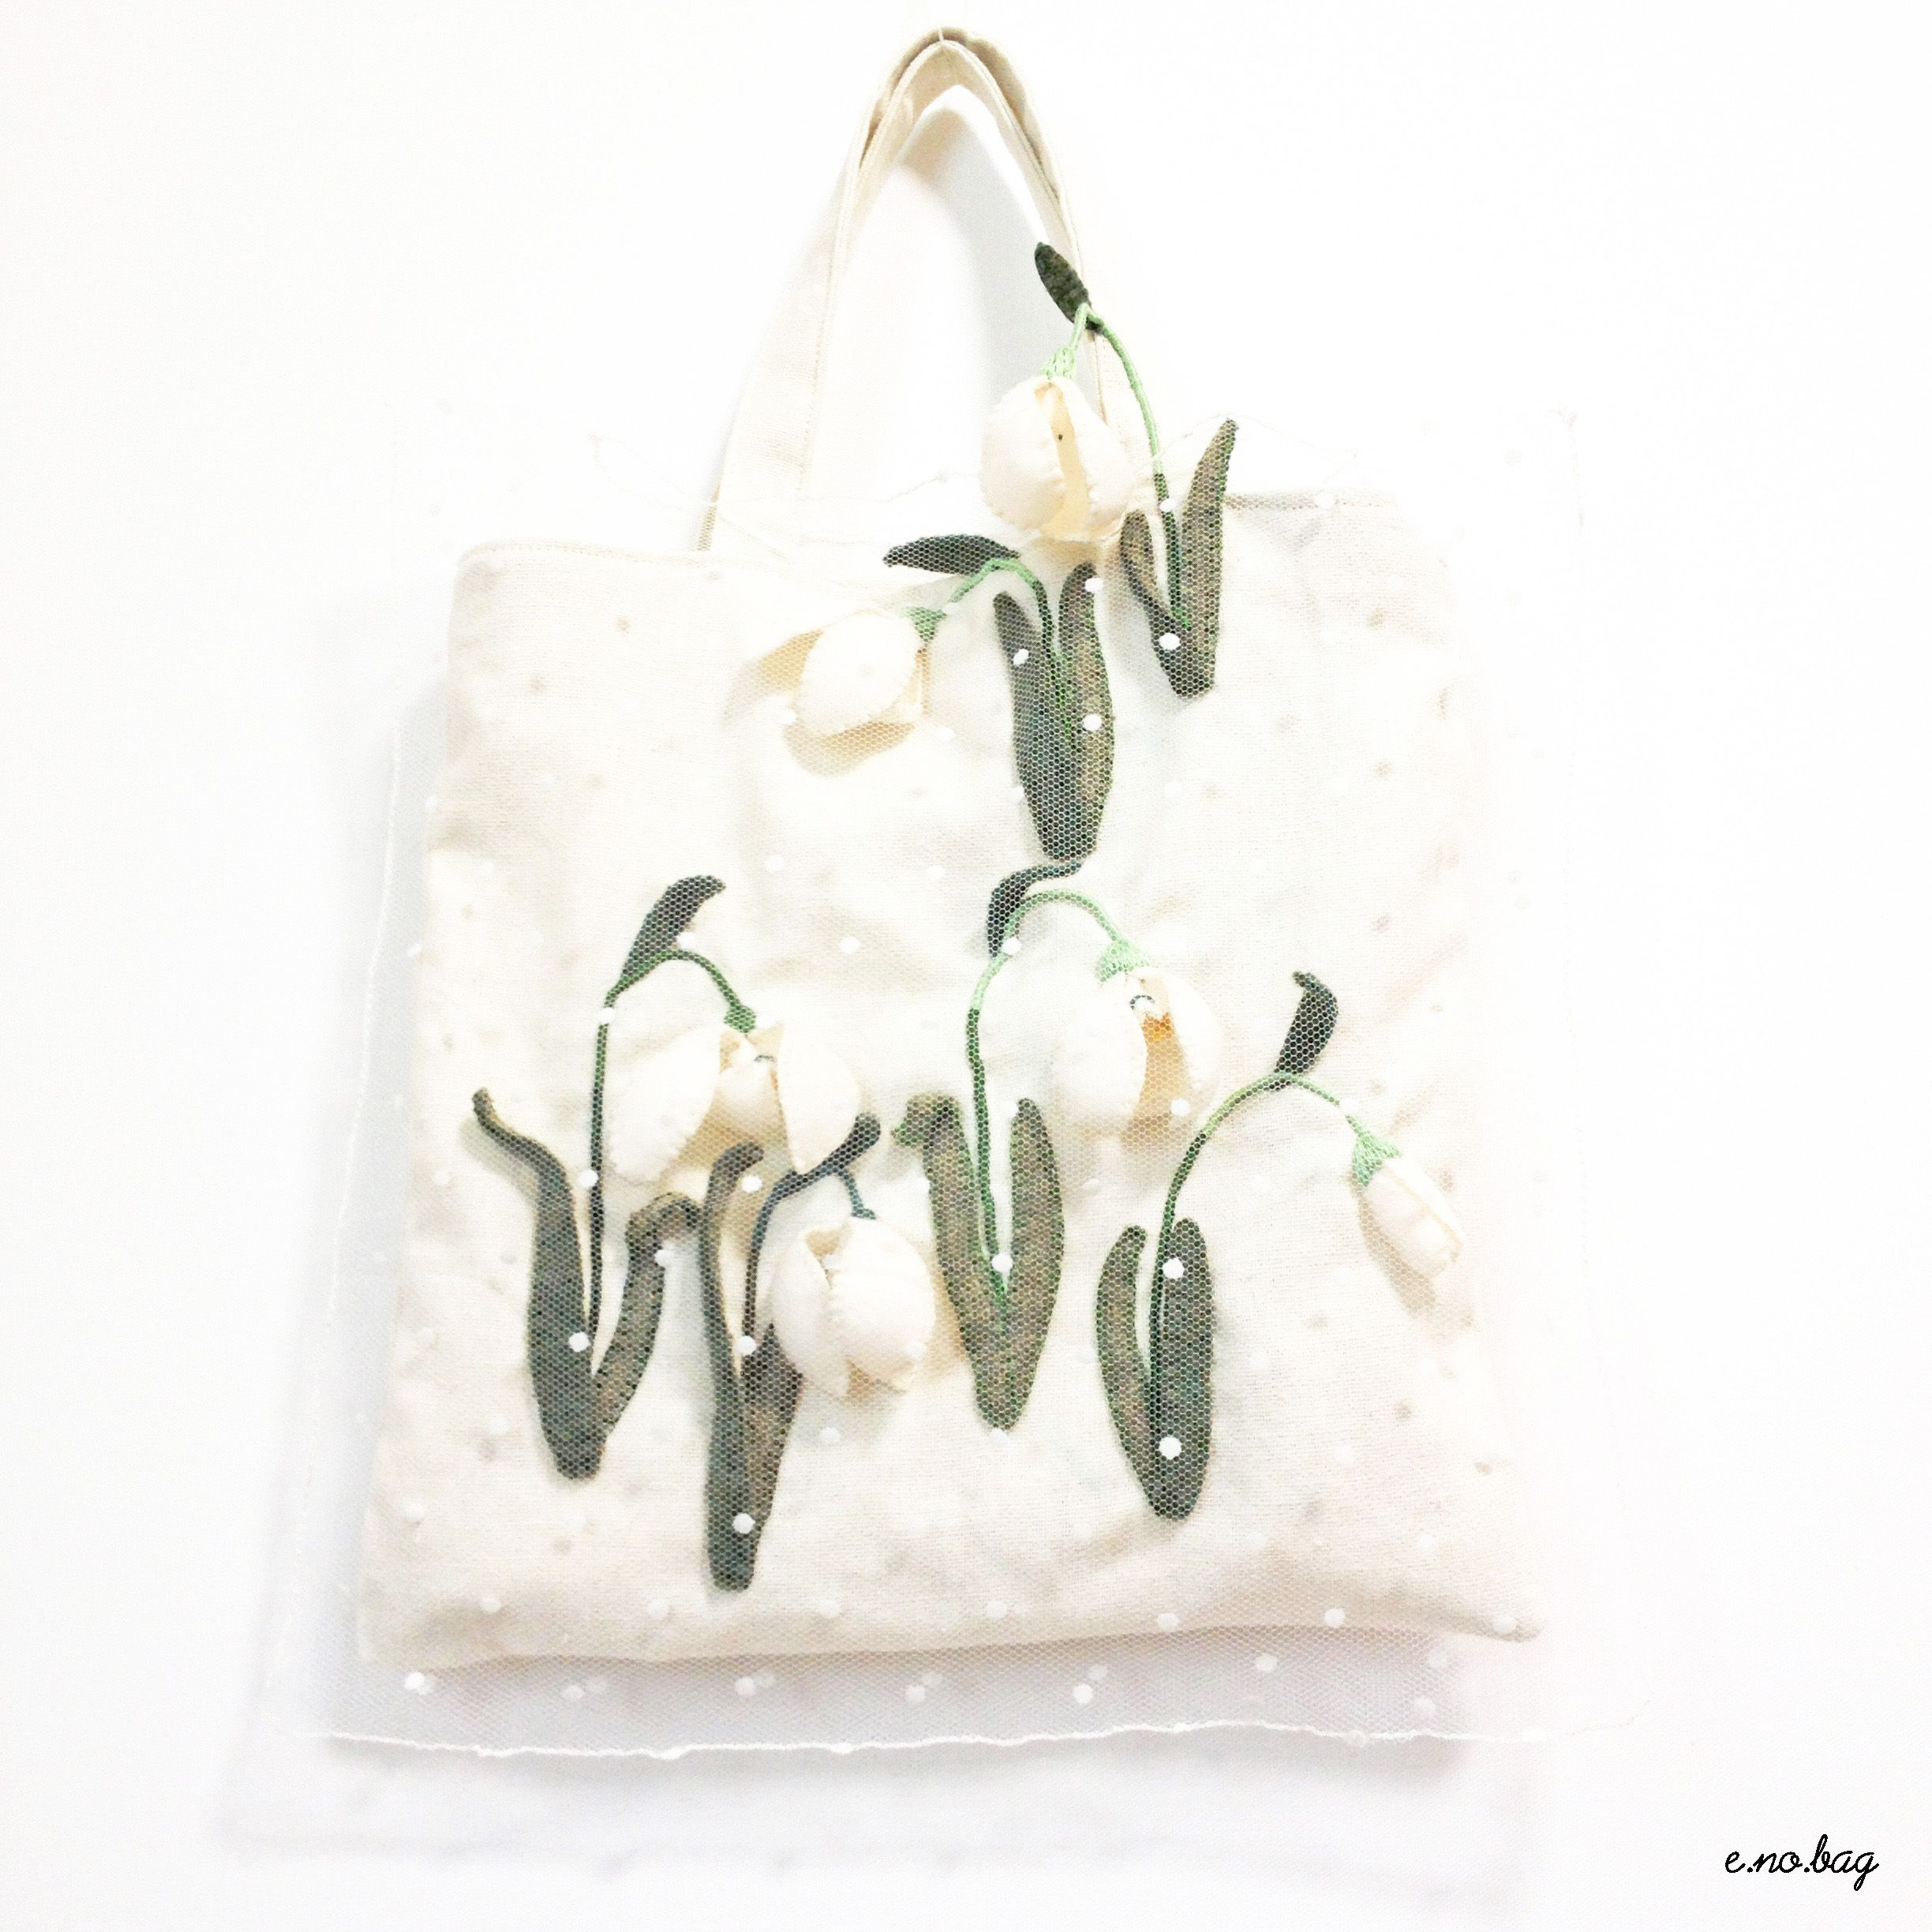 "Snowdrop felt applique and embroidery mini bag by e.no.bag ""クジャク ノ バッグ "" #snowdrop #felt #embroidery"